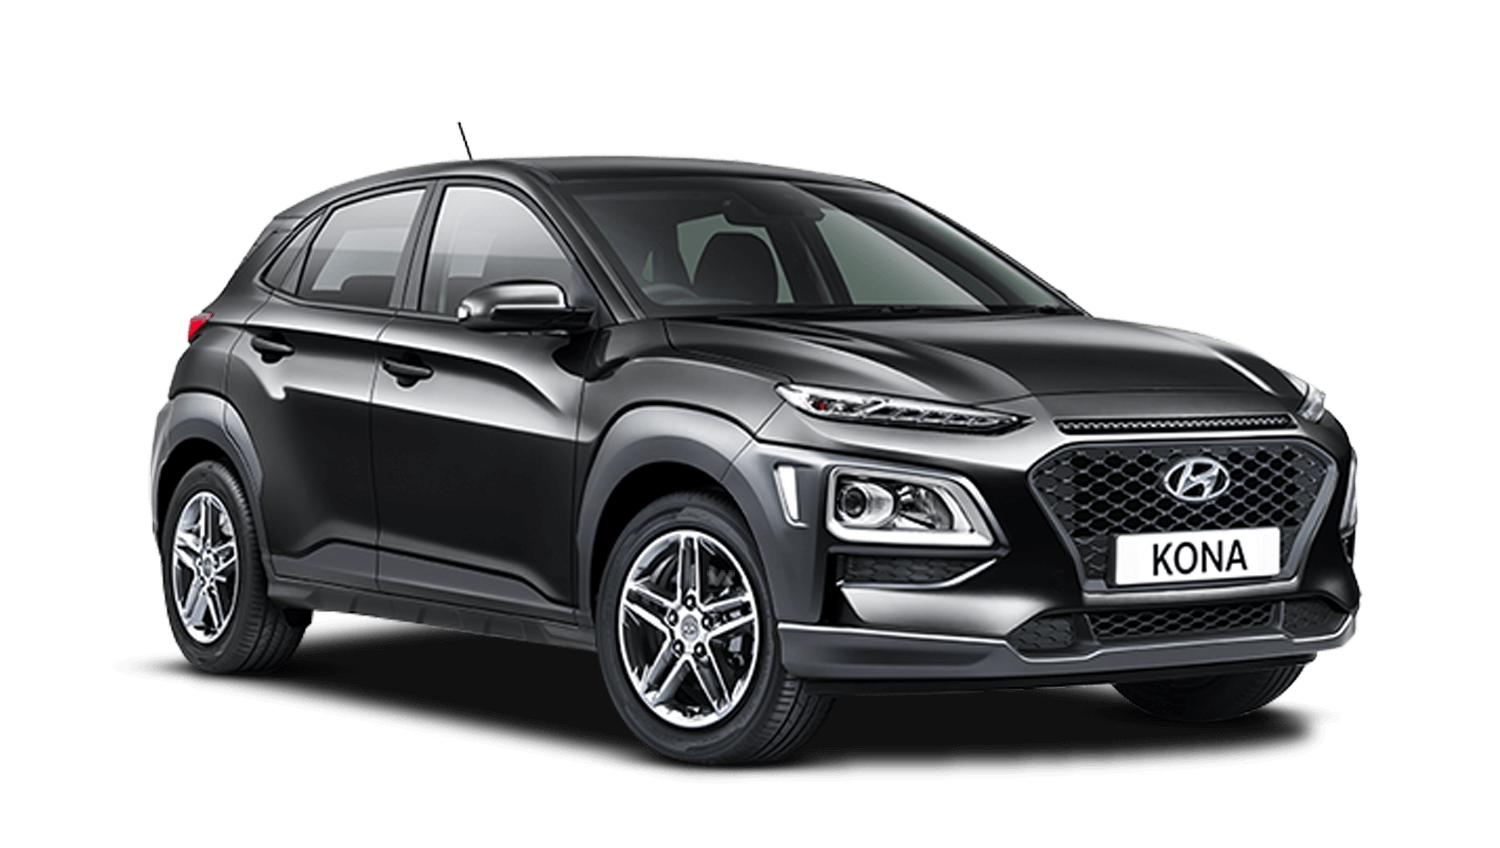 Phantom Black Hyundai KONA